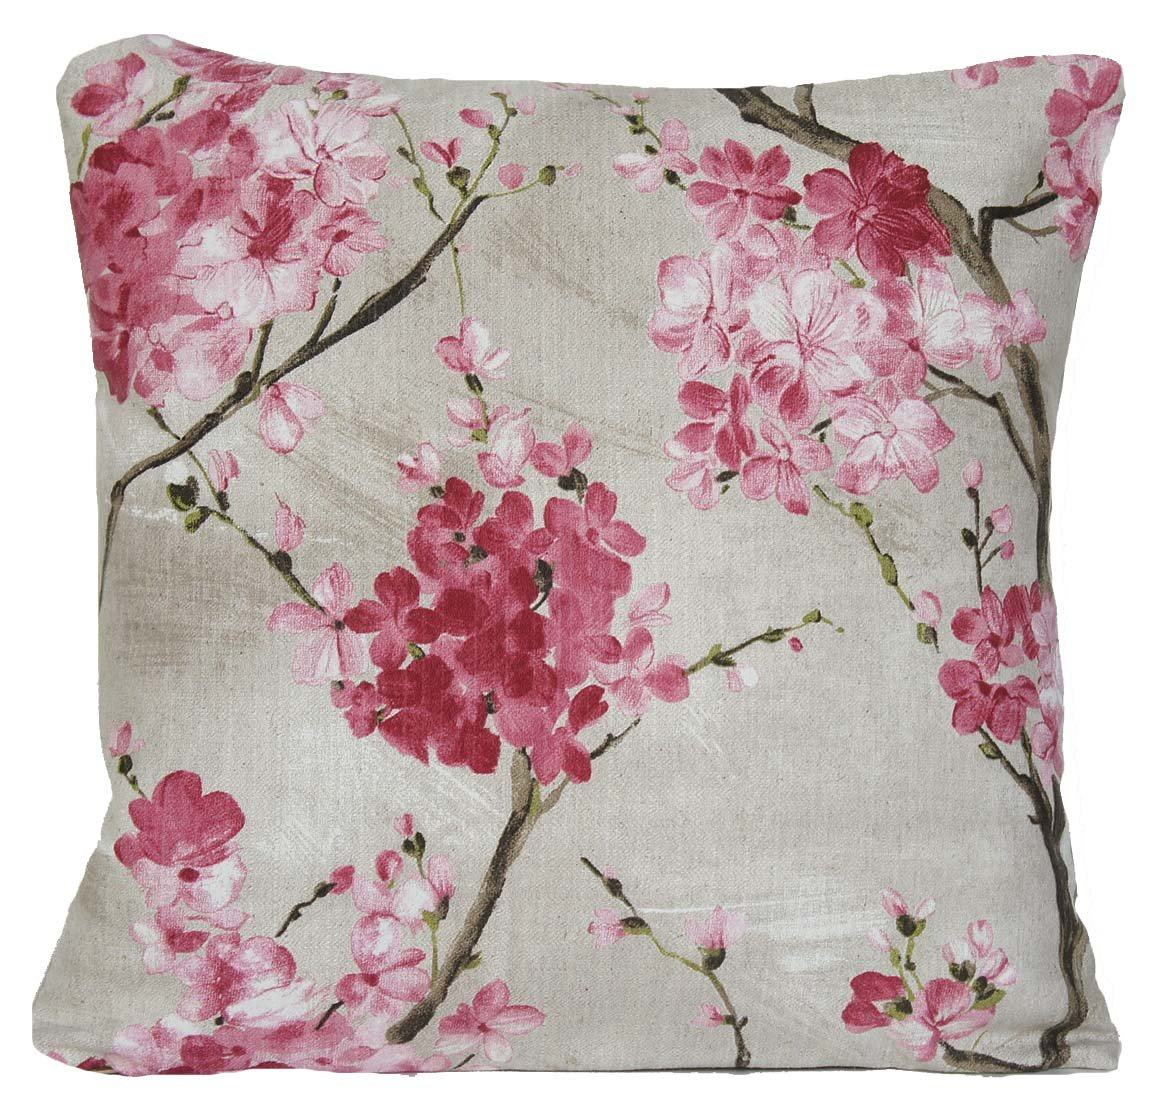 Cherry blossom cushion cover pink flowers dcor pillow throw case cherry blossom cushion cover pink flowers dcor pillow throw case amazon kitchen home mightylinksfo